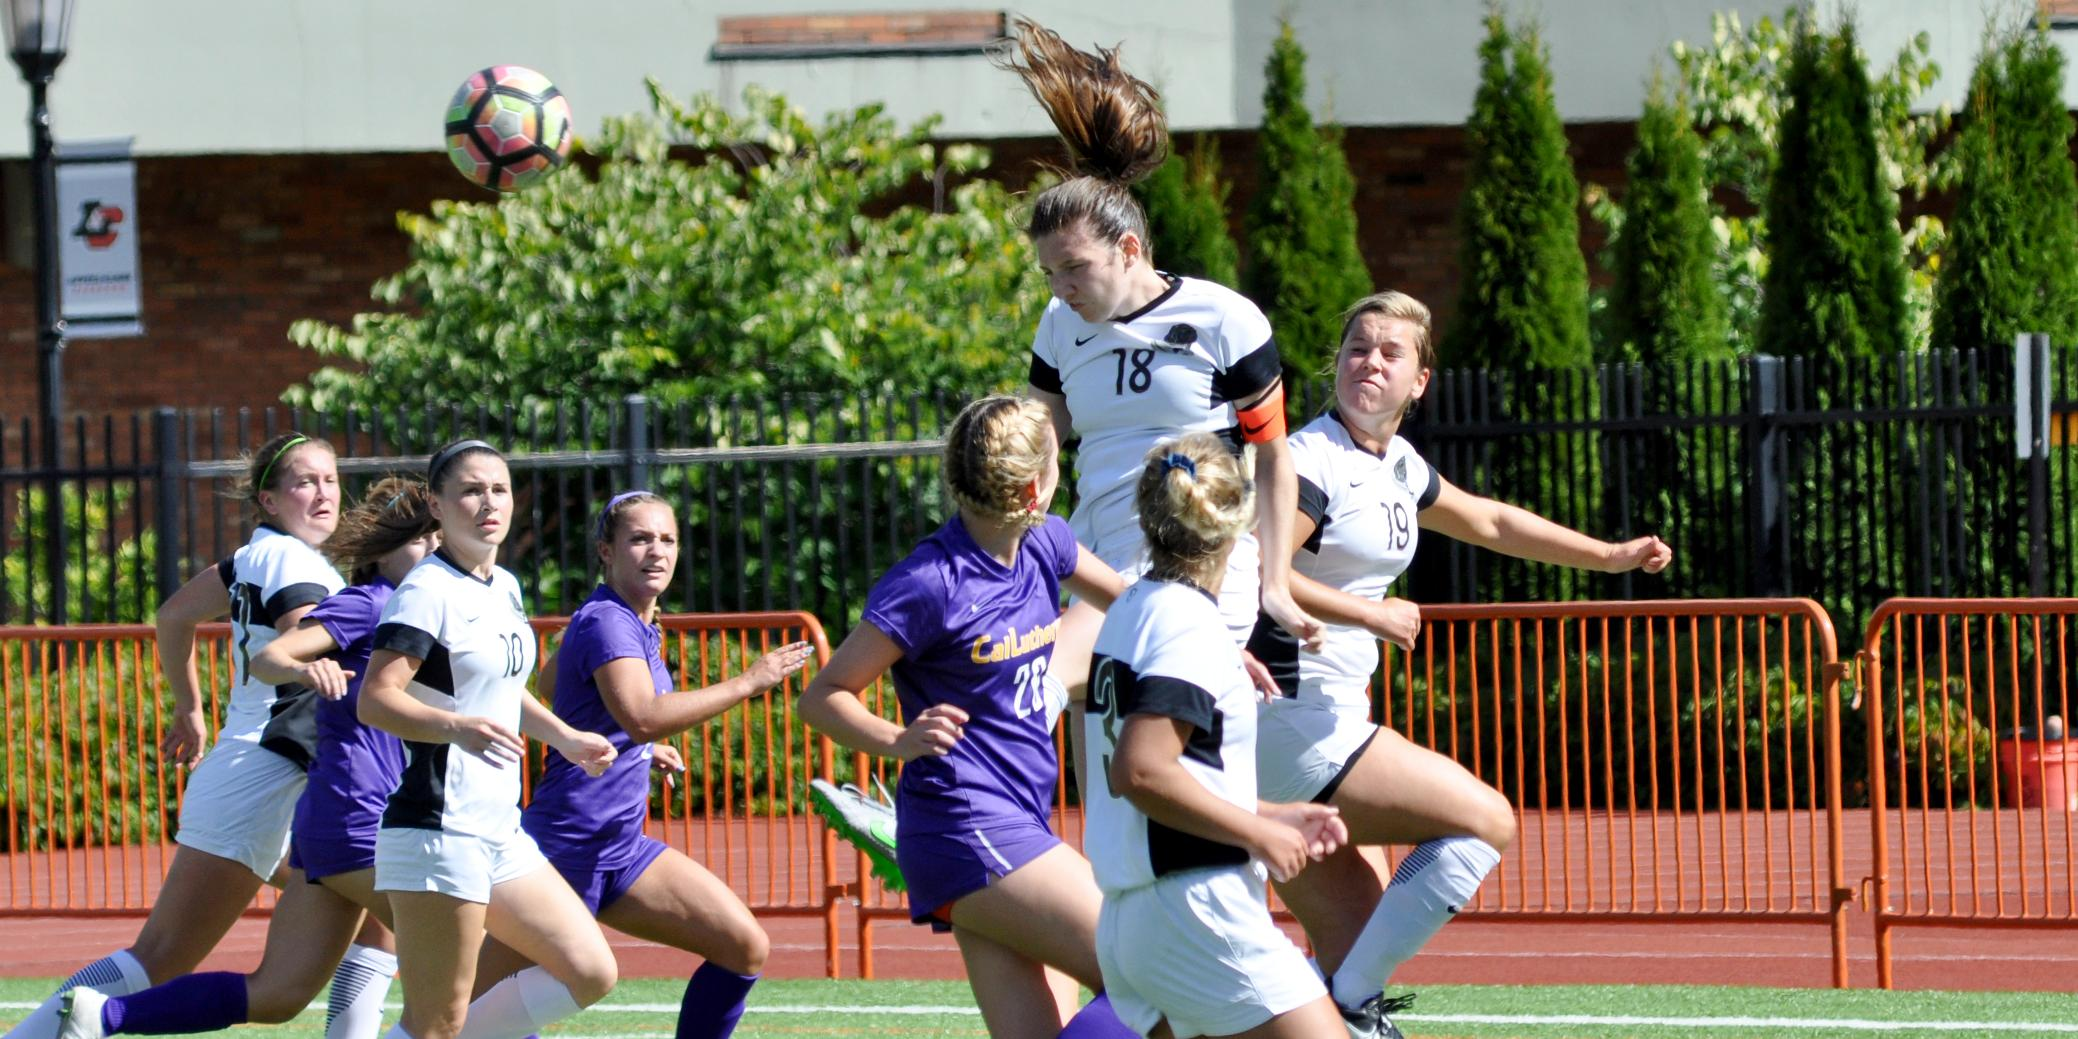 Lack of offense leads to Pios loss against Cal Lutheran